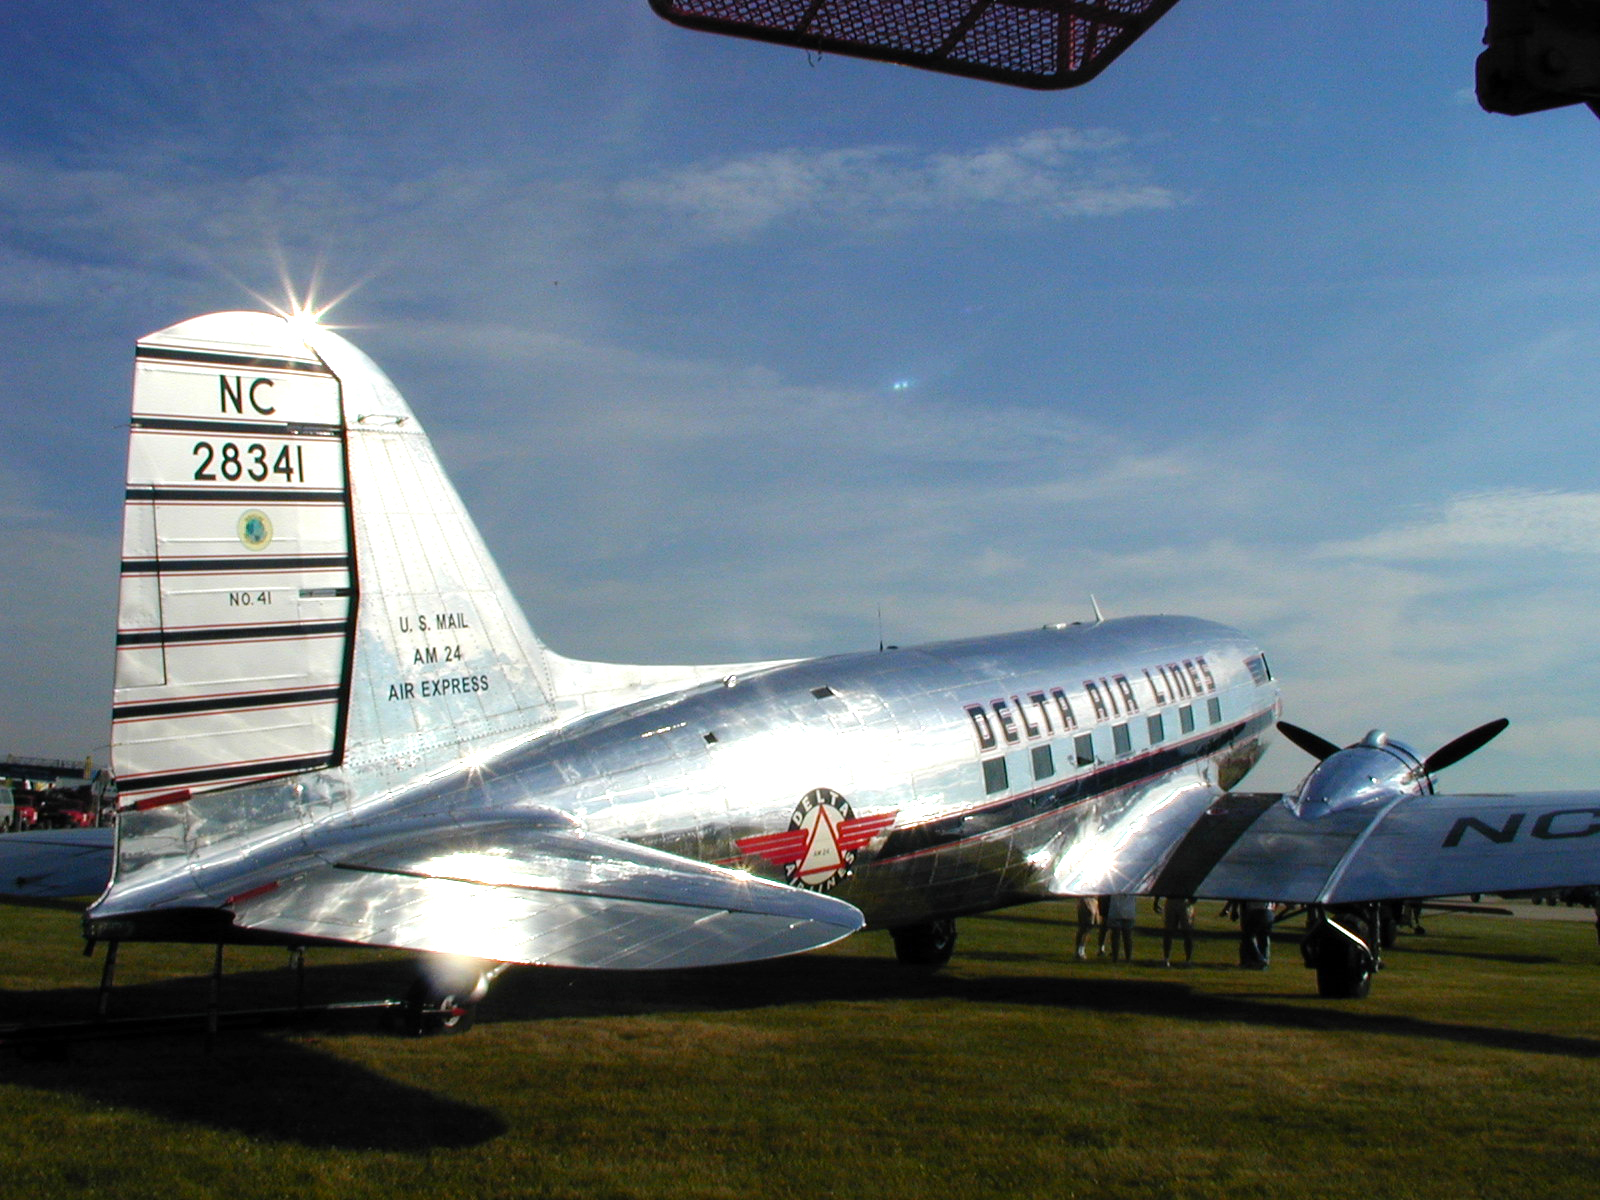 The DC-3 first flew in 1935 and became the standard for air travel until the 1950s. Some were still in passenger service through 1985. The aircraft held up ...